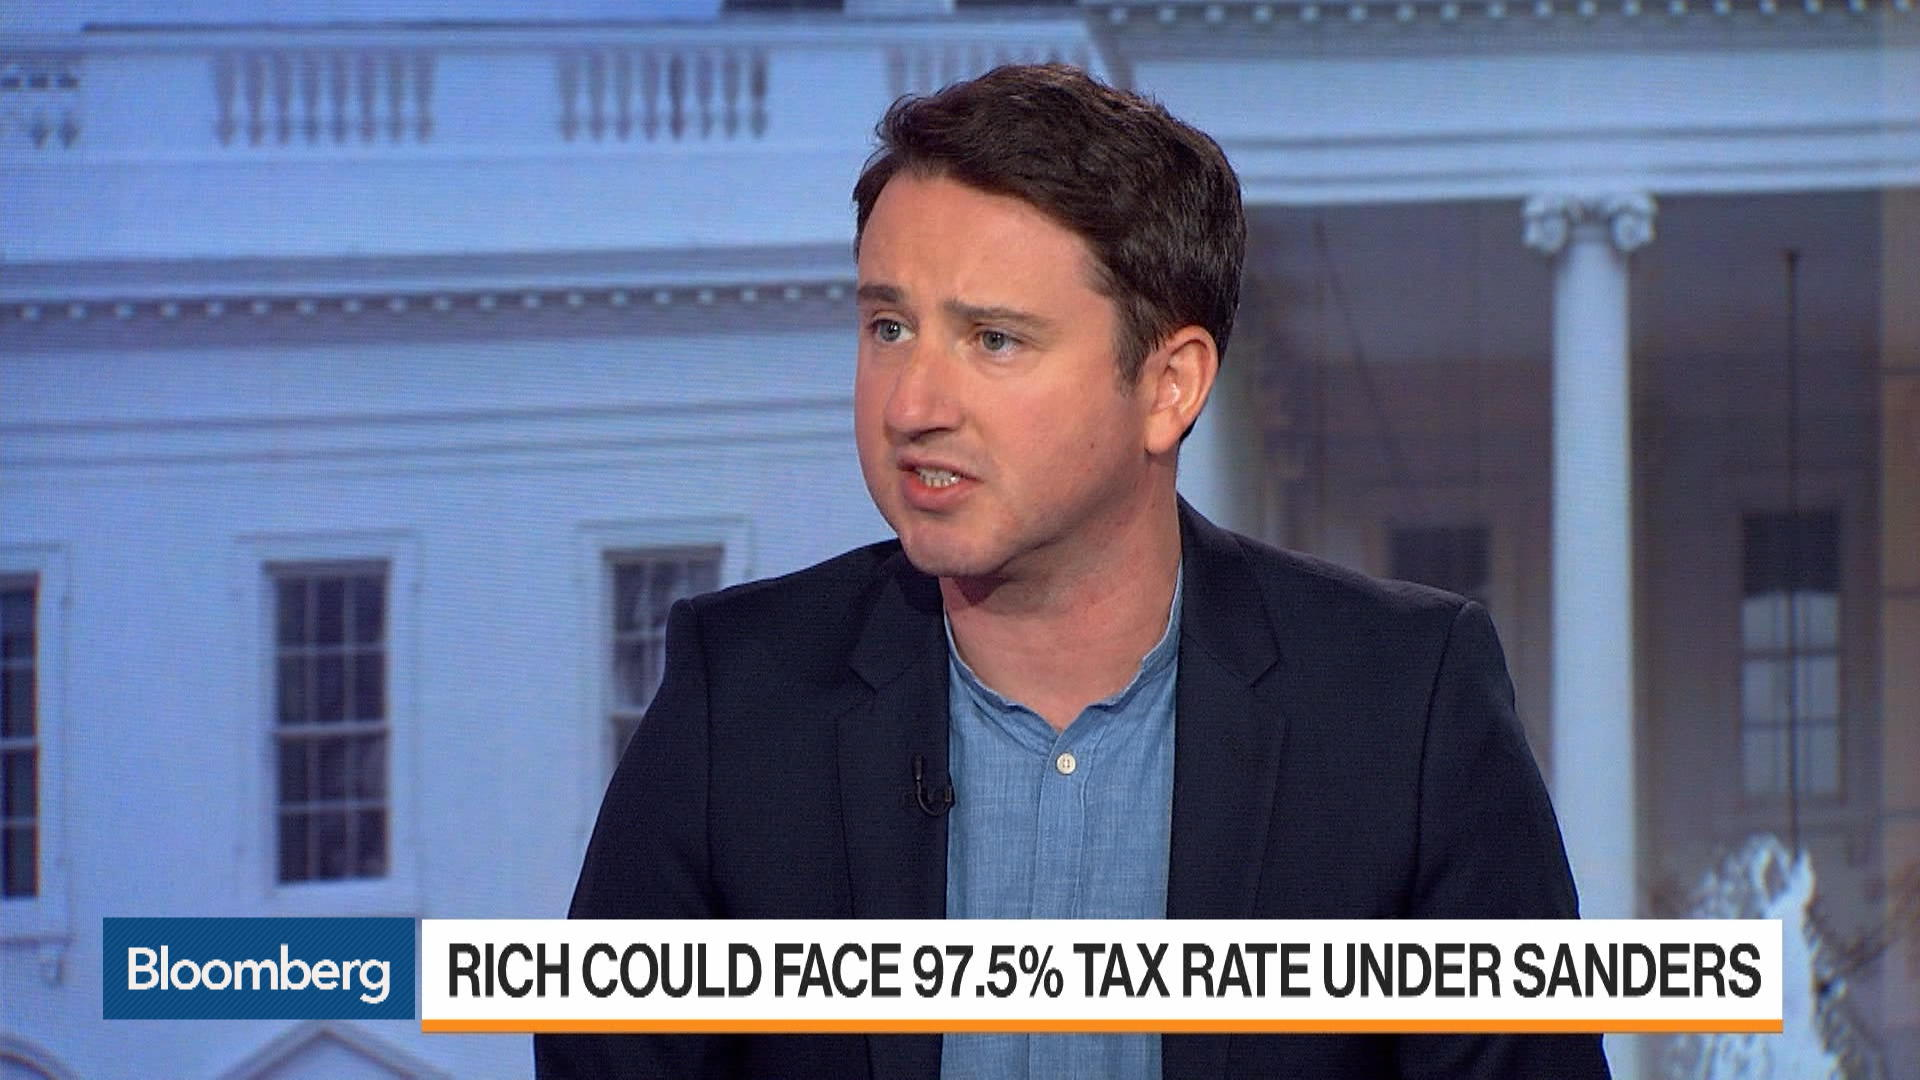 Berkeley's Zucman on Inequality and the Case For Adopting a Wealth Tax